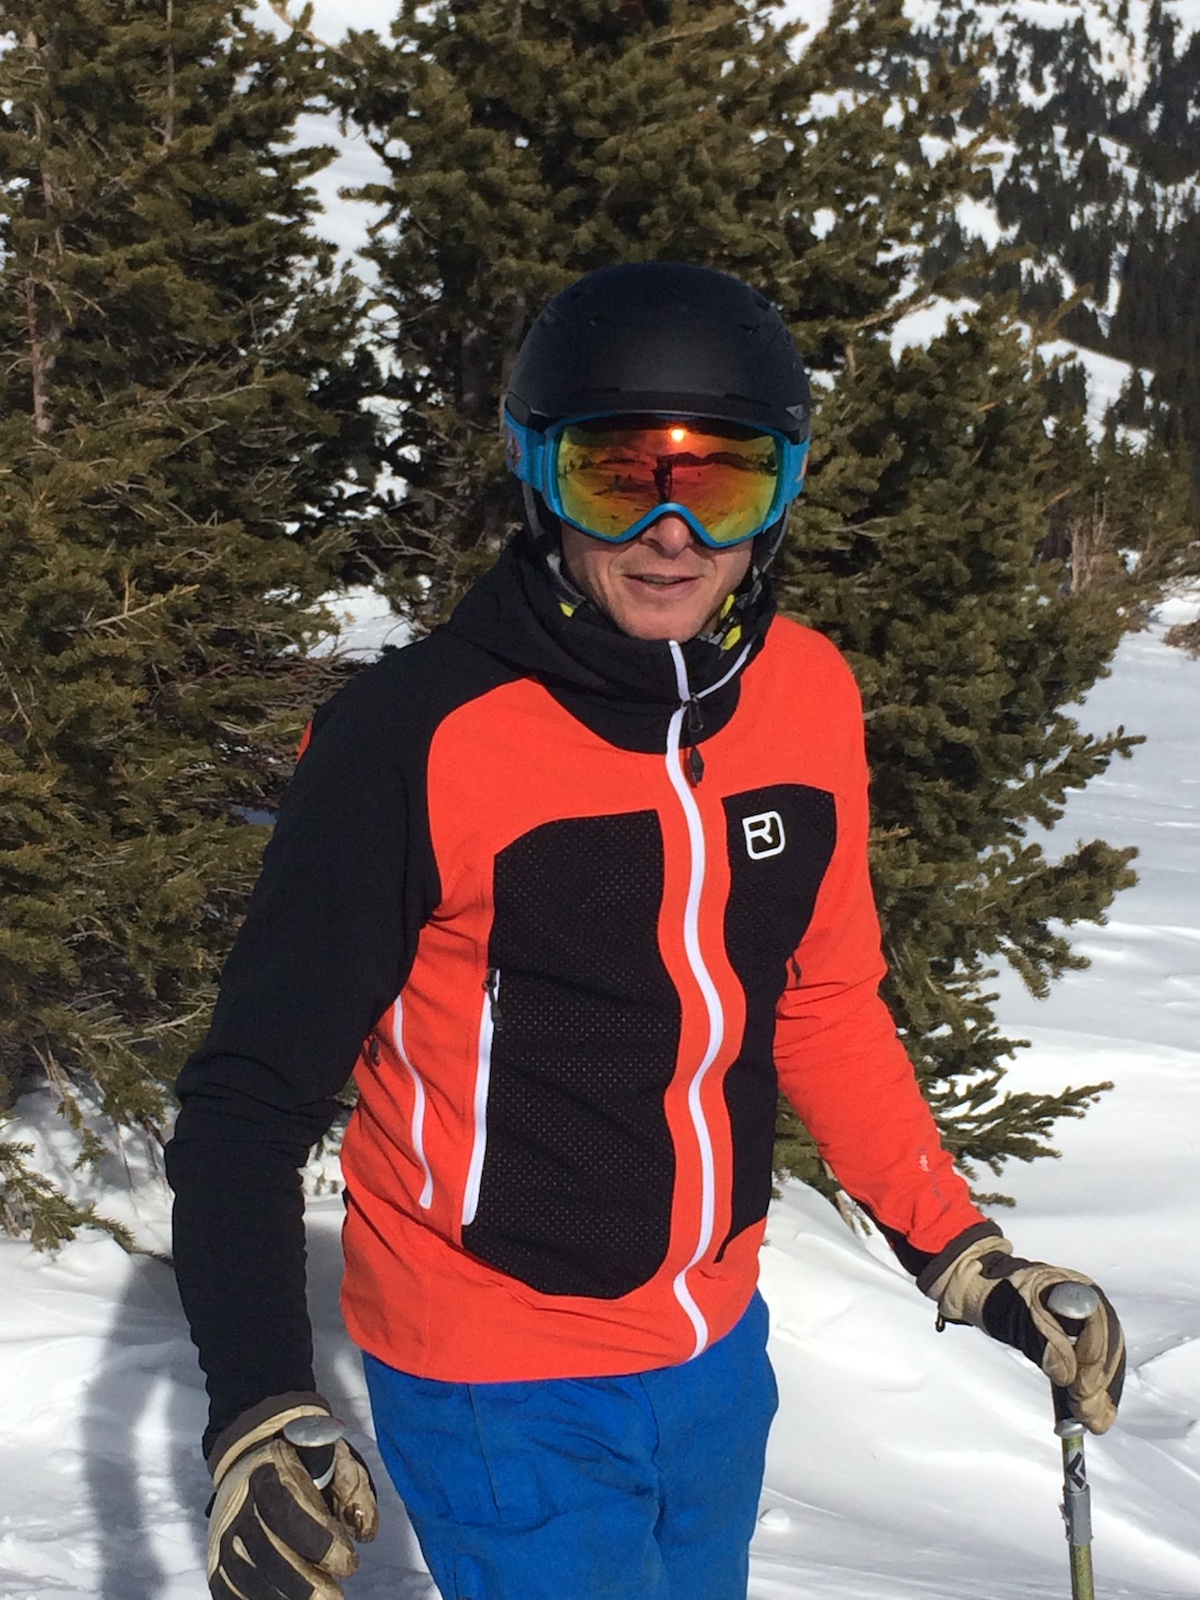 Mike Lewis wearing the Col Becchei while skiing in Colorado. [Photo] Chris Wood